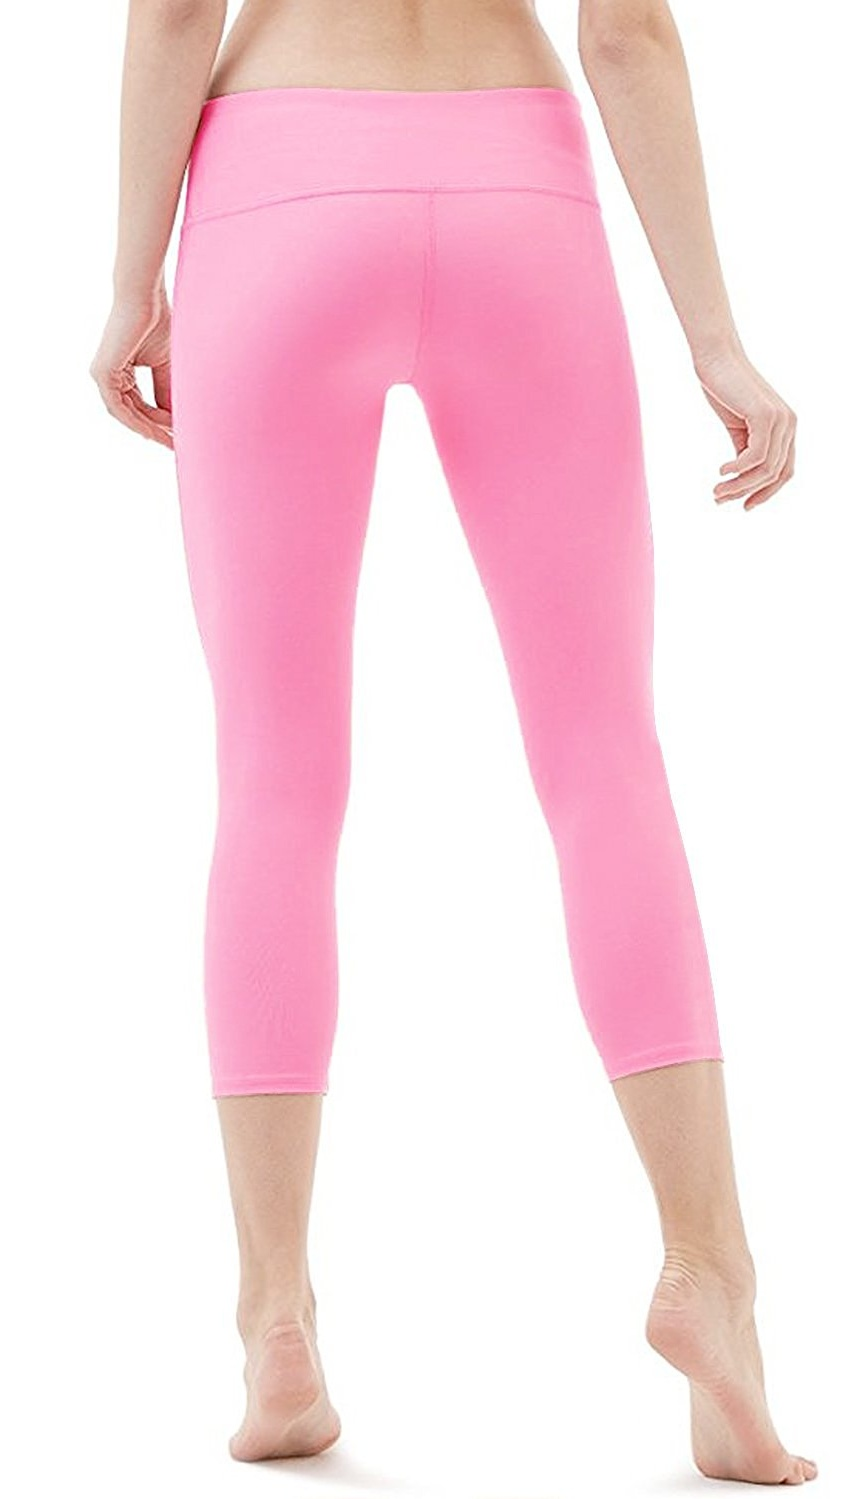 e72656eadf Camellias Corsets - Camellias Womens Yoga Capri Leggings Stretchy Workout  Pants Running Tights With Hidden Pocket Pink